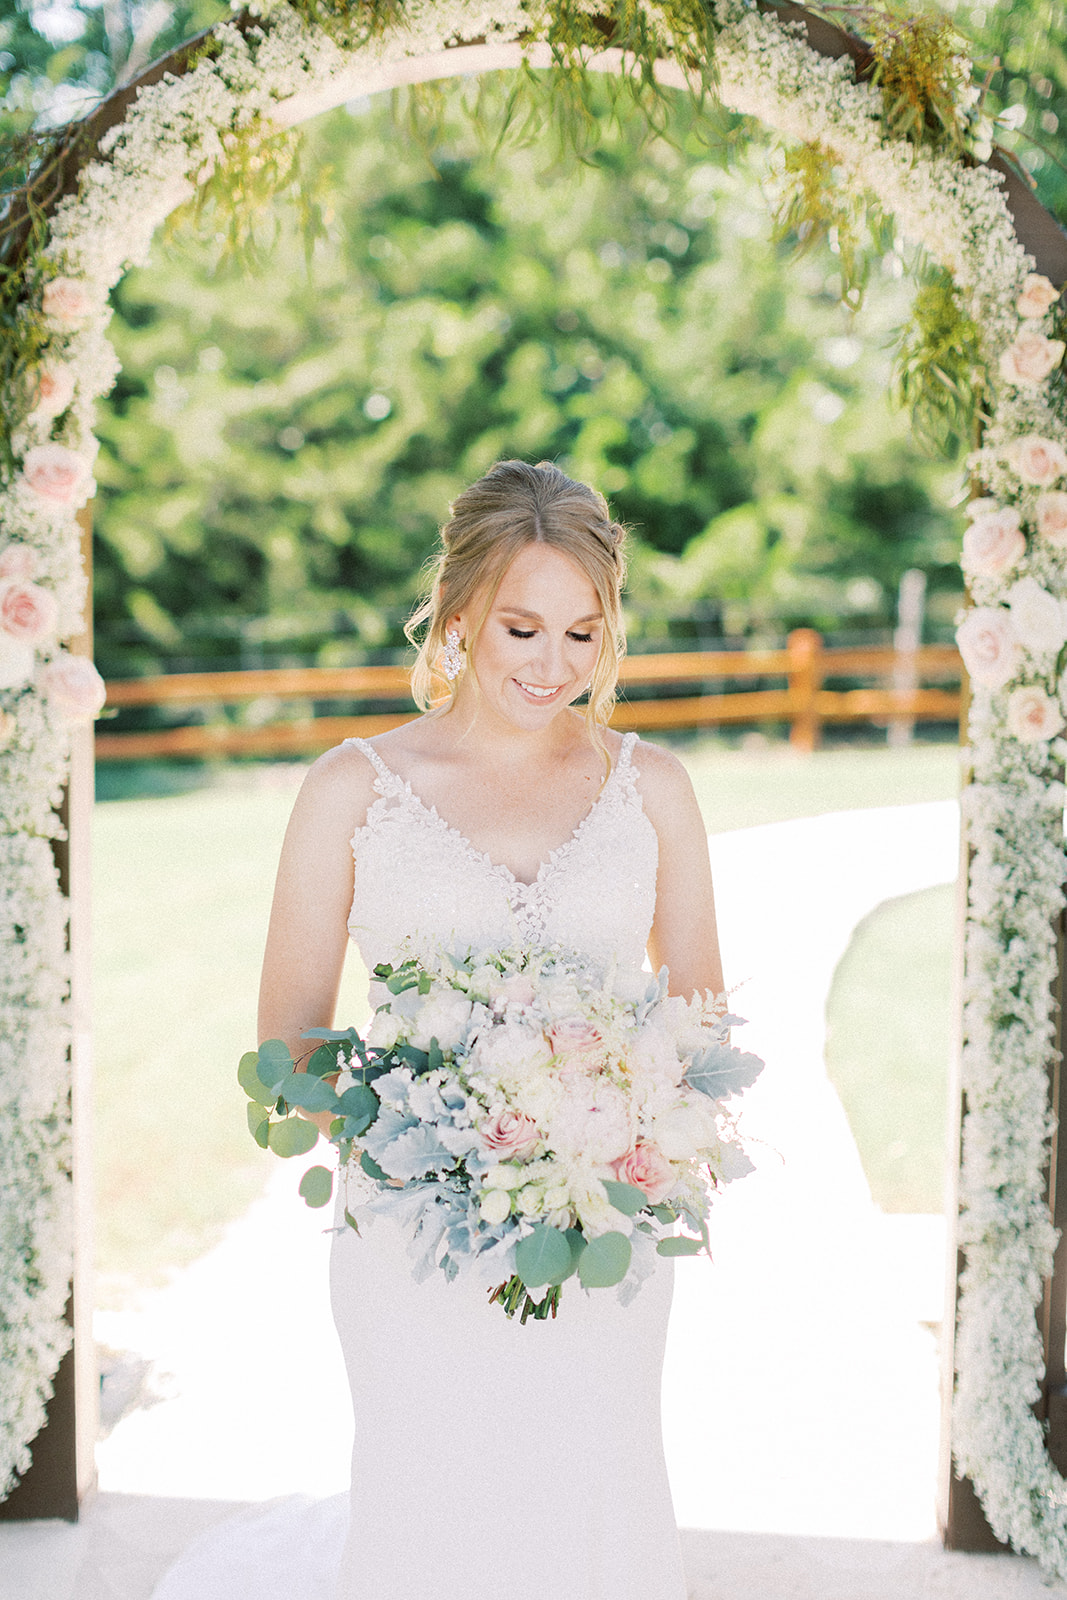 Spring bridal bouquet design: | Romantic blue Texas wedding at Spring Venue by Alexa Kay Events